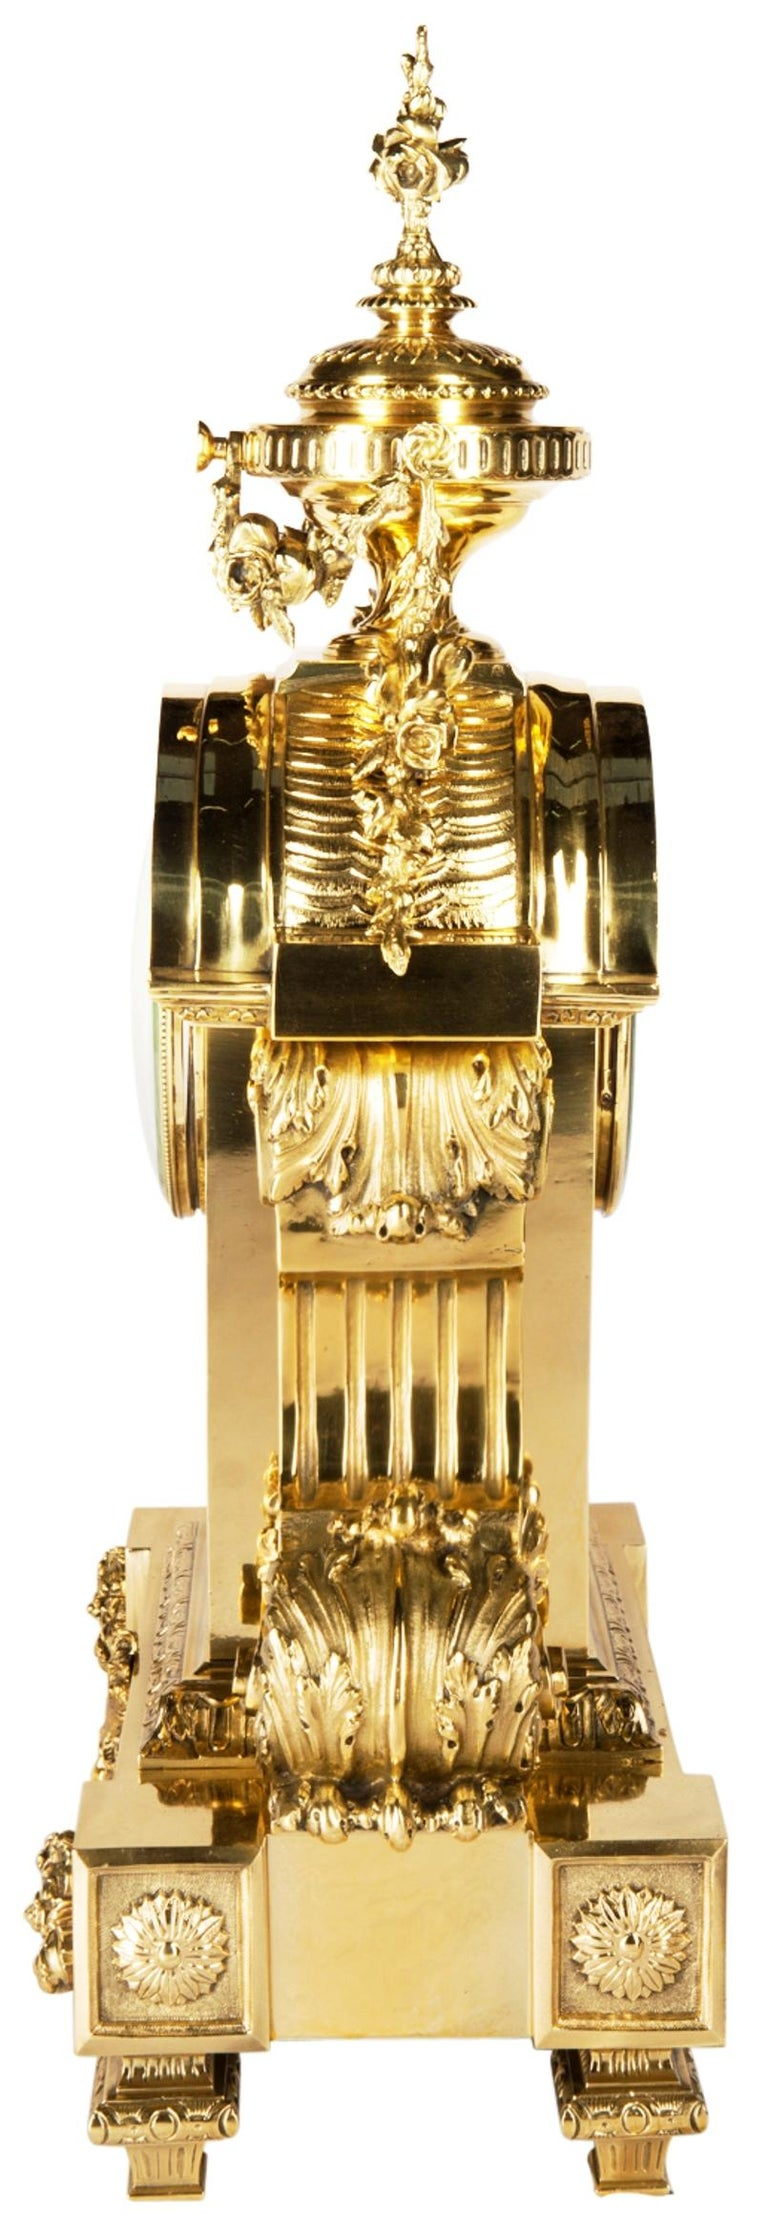 Louis XVI 19th Century Mantel Clock by Leroy For Sale 4